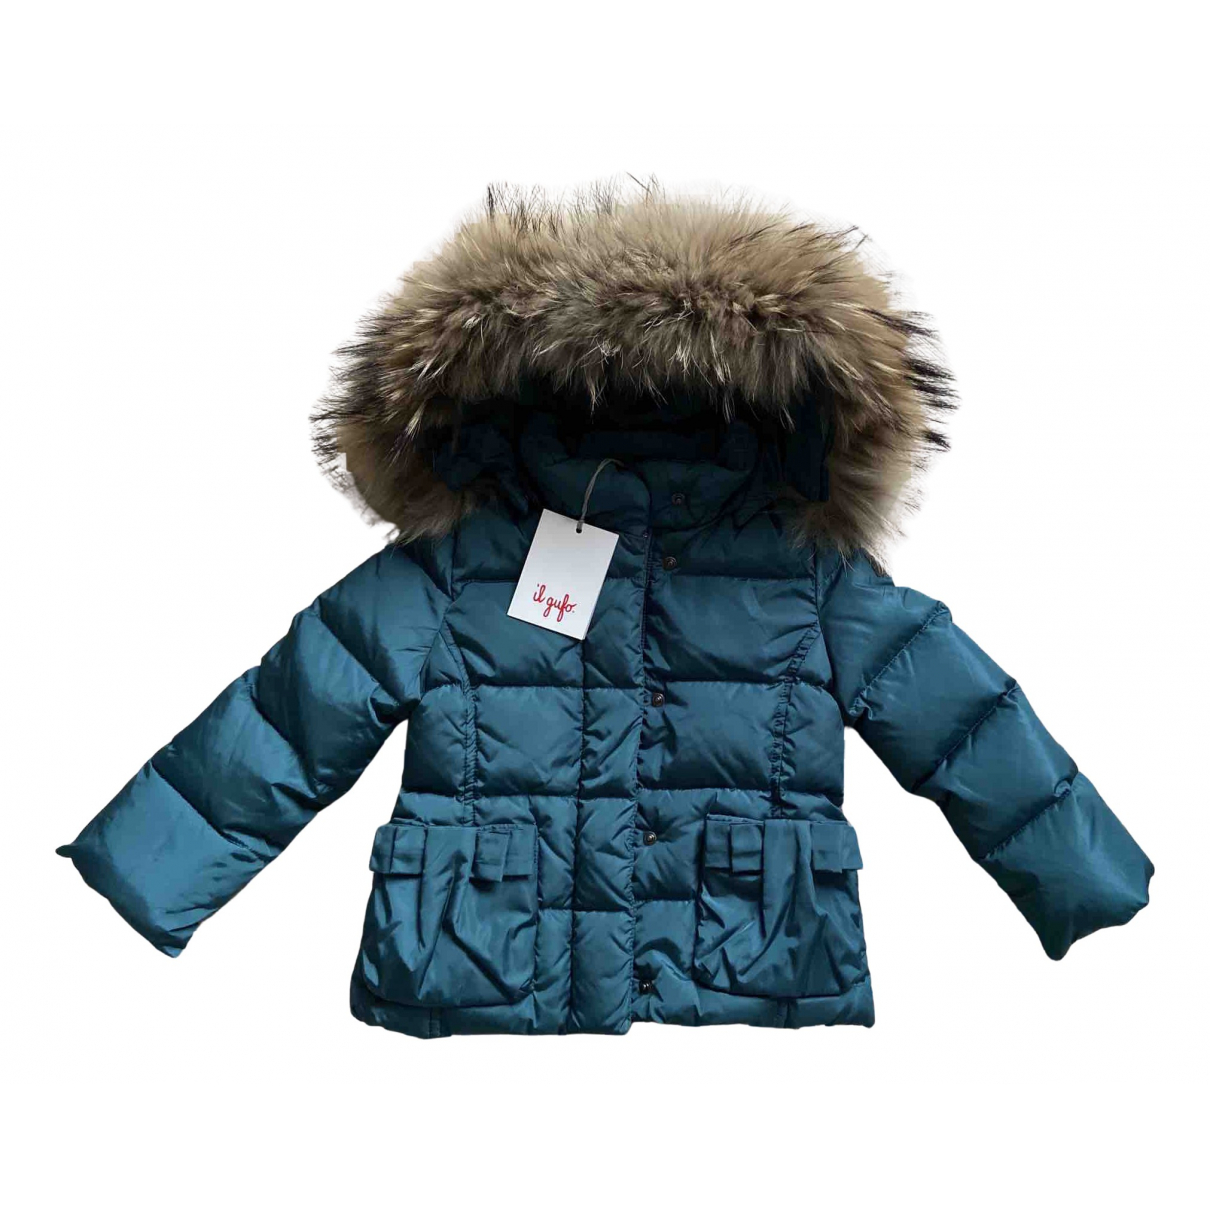 Il Gufo N Green jacket & coat for Kids 2 years - up to 86cm FR